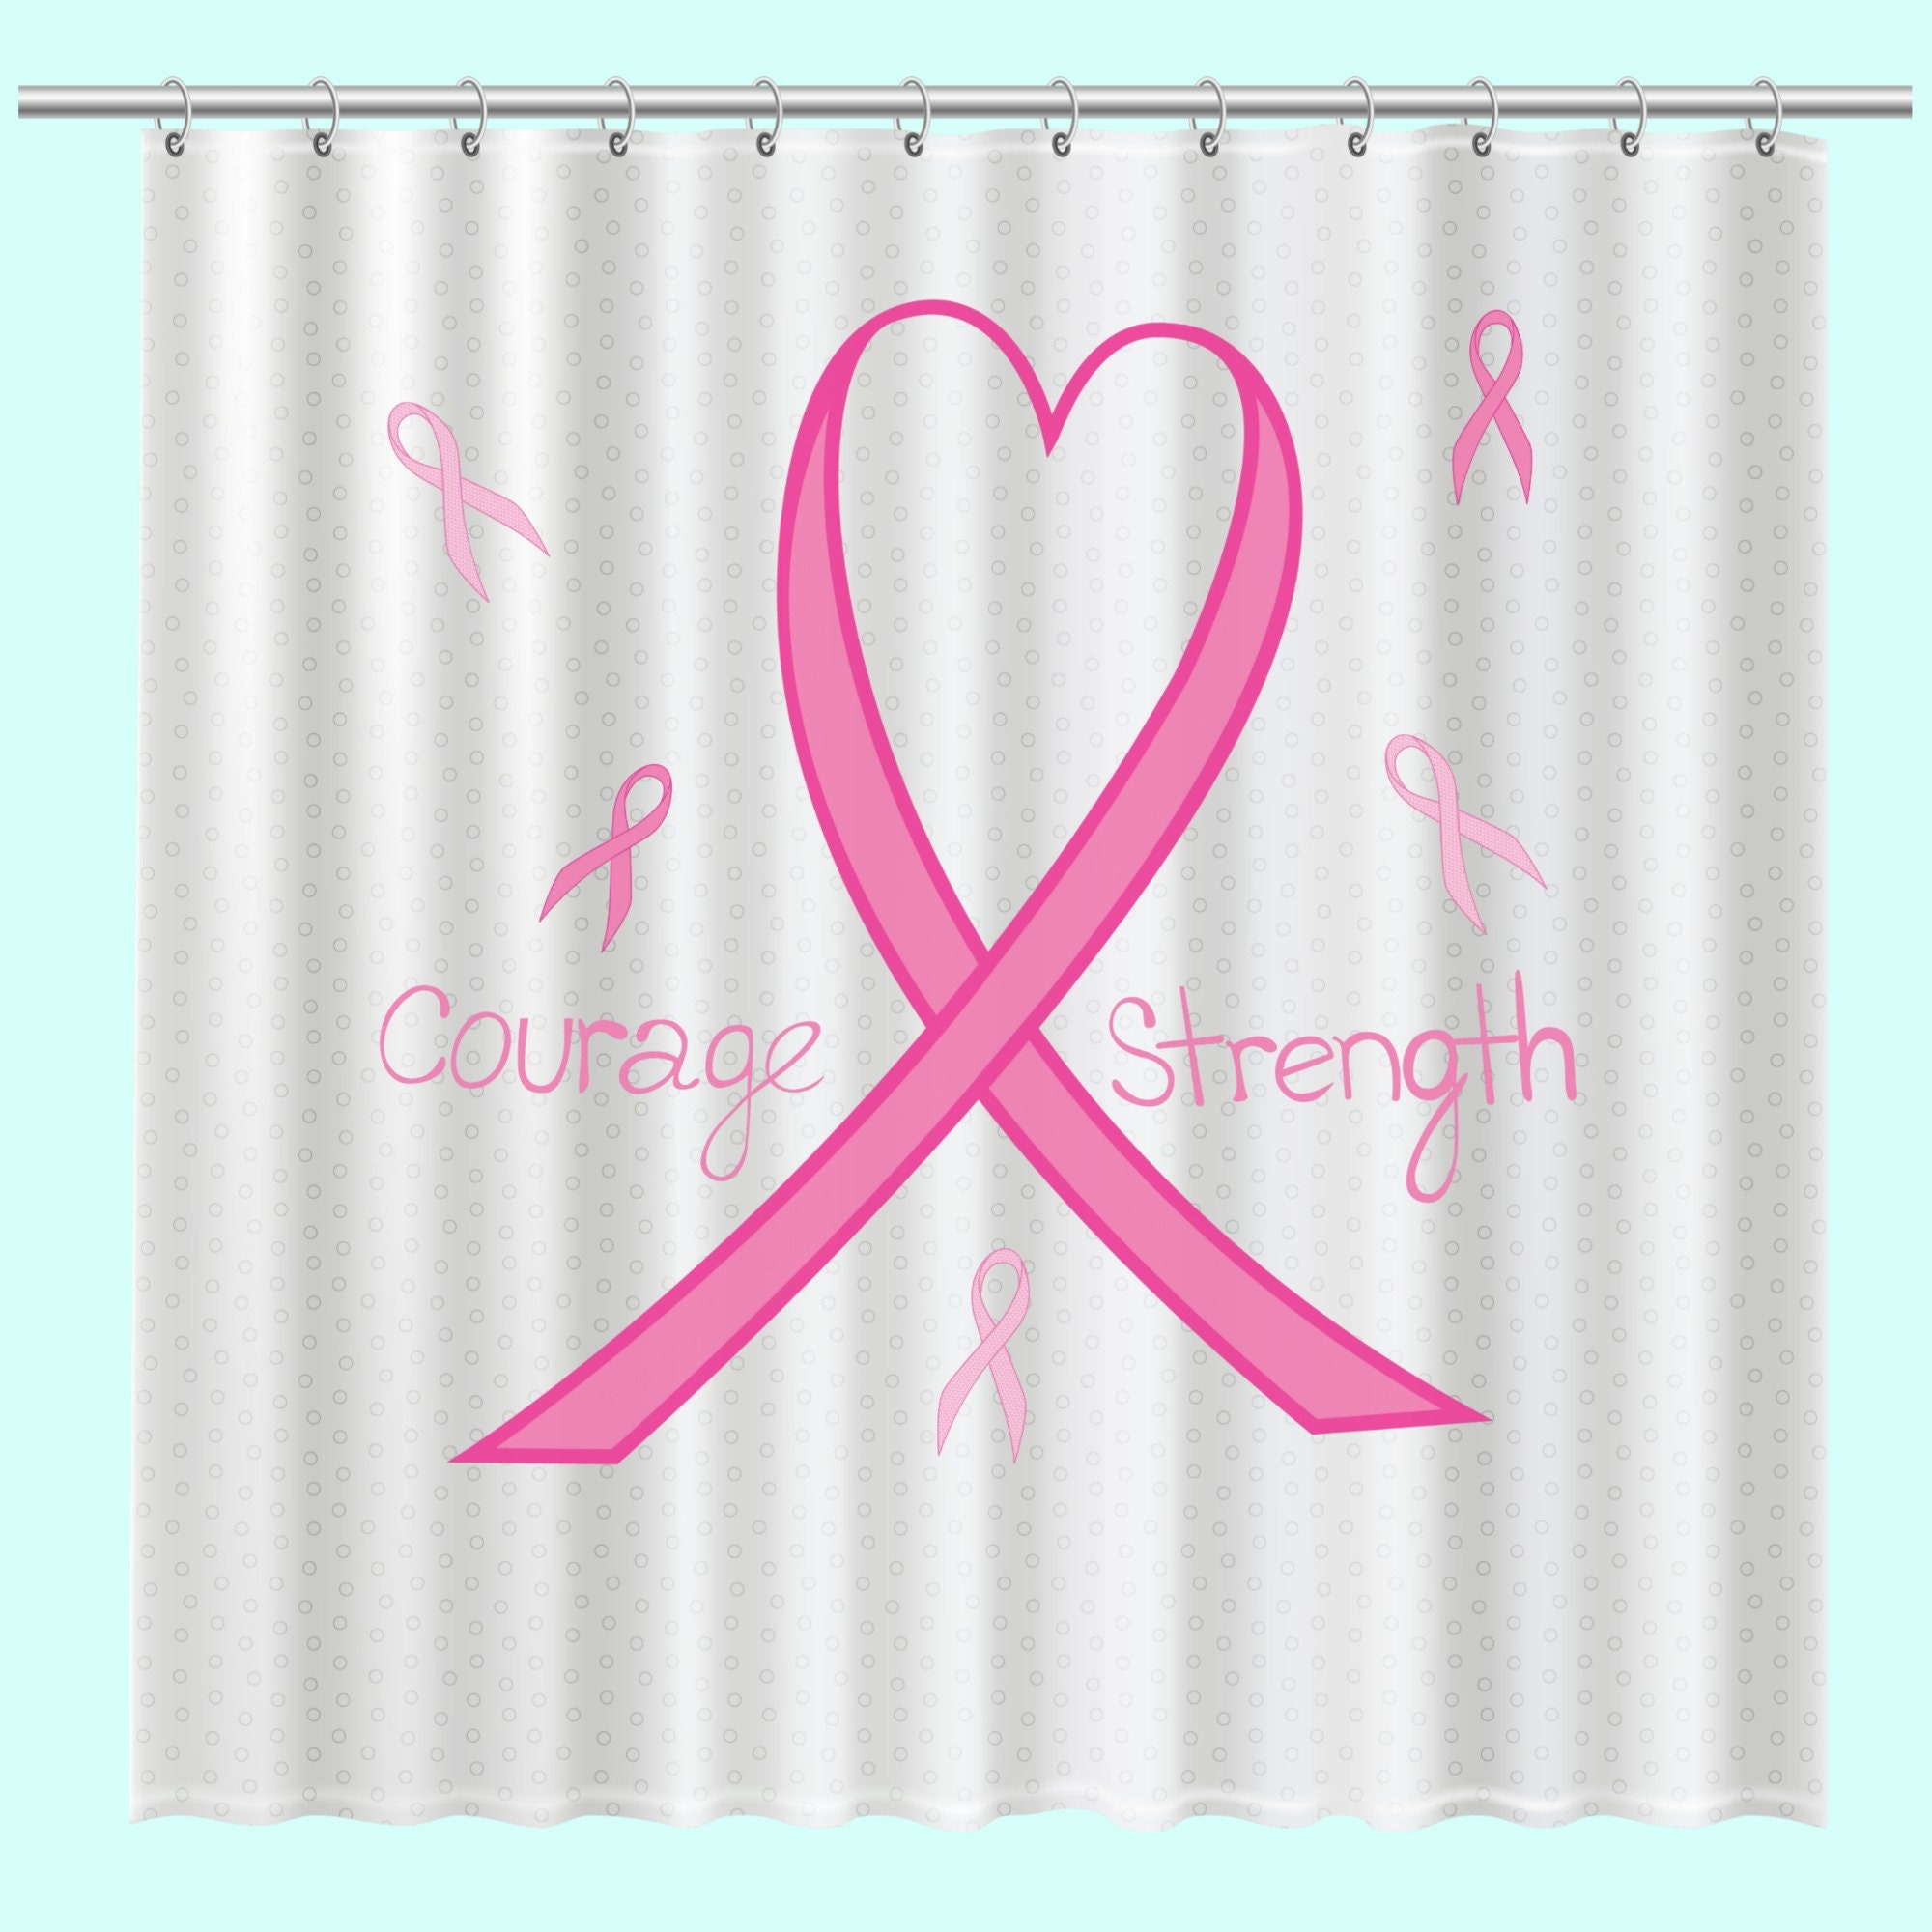 Breast Cancer Awareness Shower Curtain Unique Support Bath Pink Ribbon With Liner 71 X 74 Free Shipping